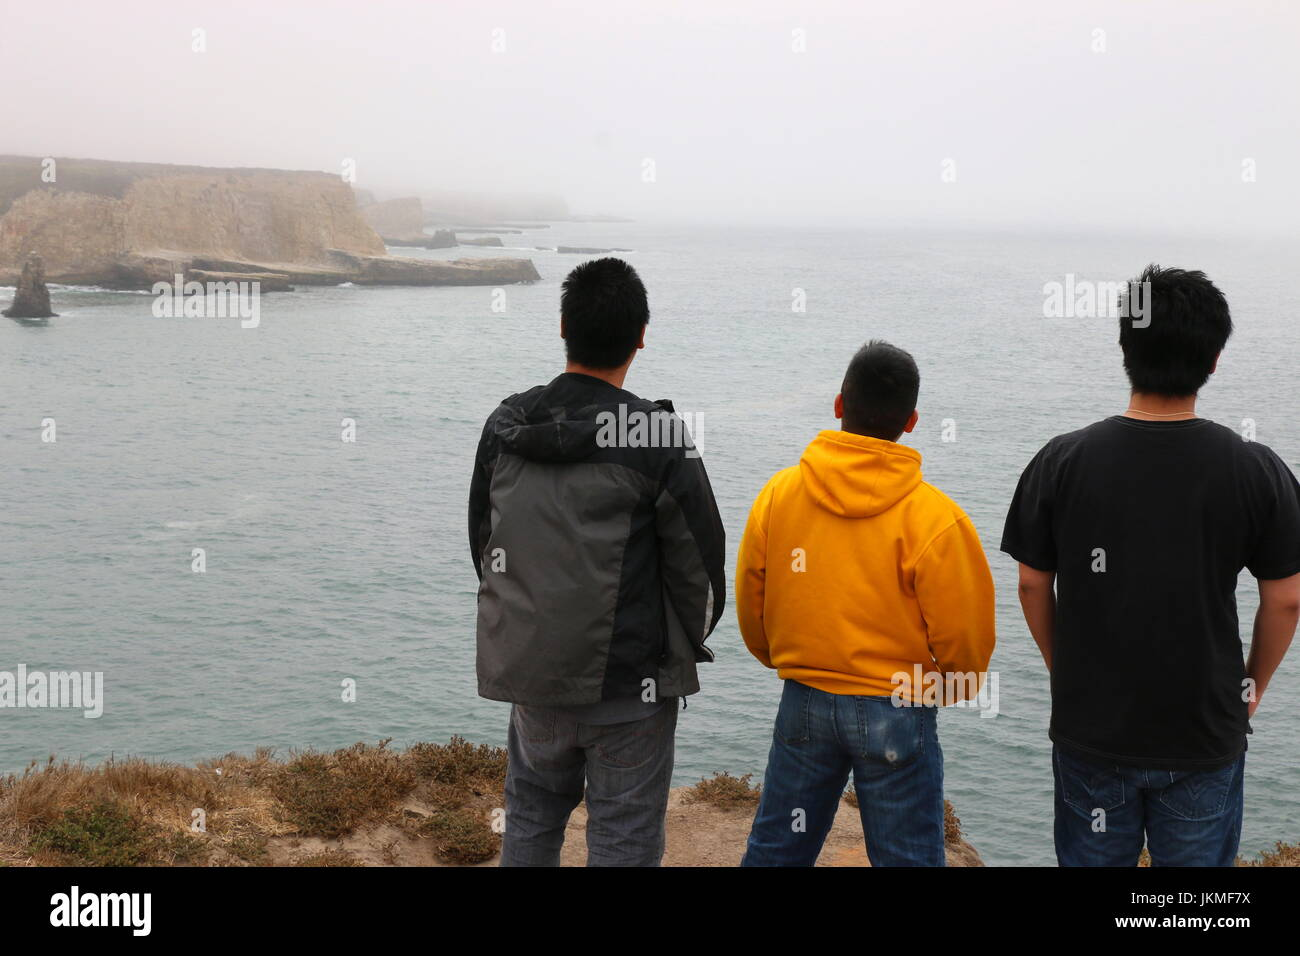 Three young Asian men on a hike overlooking the California coast, Davenport CA. - Stock Image